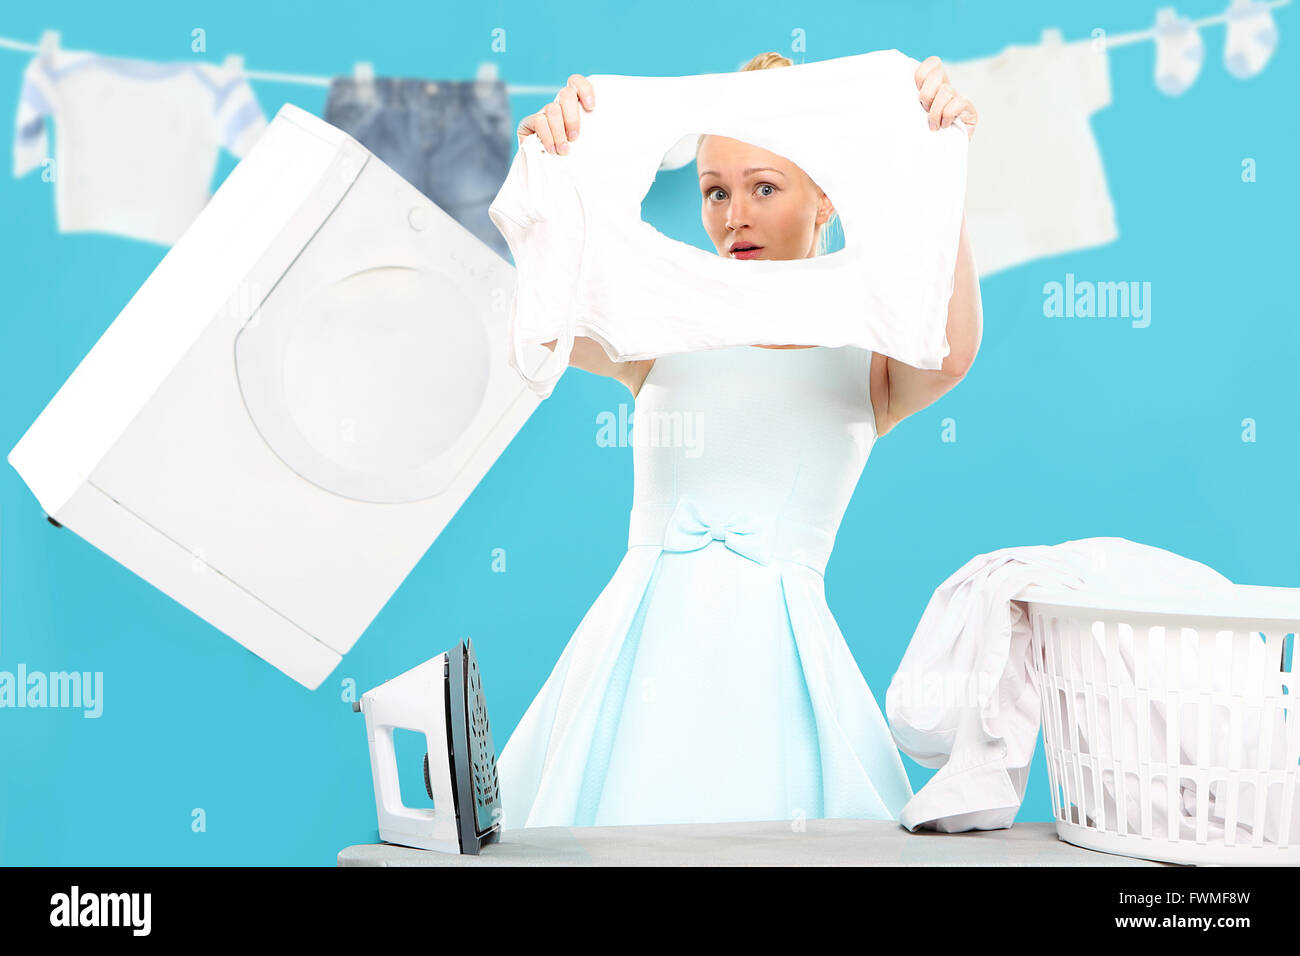 woman cleaning house funny stockfotos woman cleaning house funny bilder seite 3 alamy. Black Bedroom Furniture Sets. Home Design Ideas